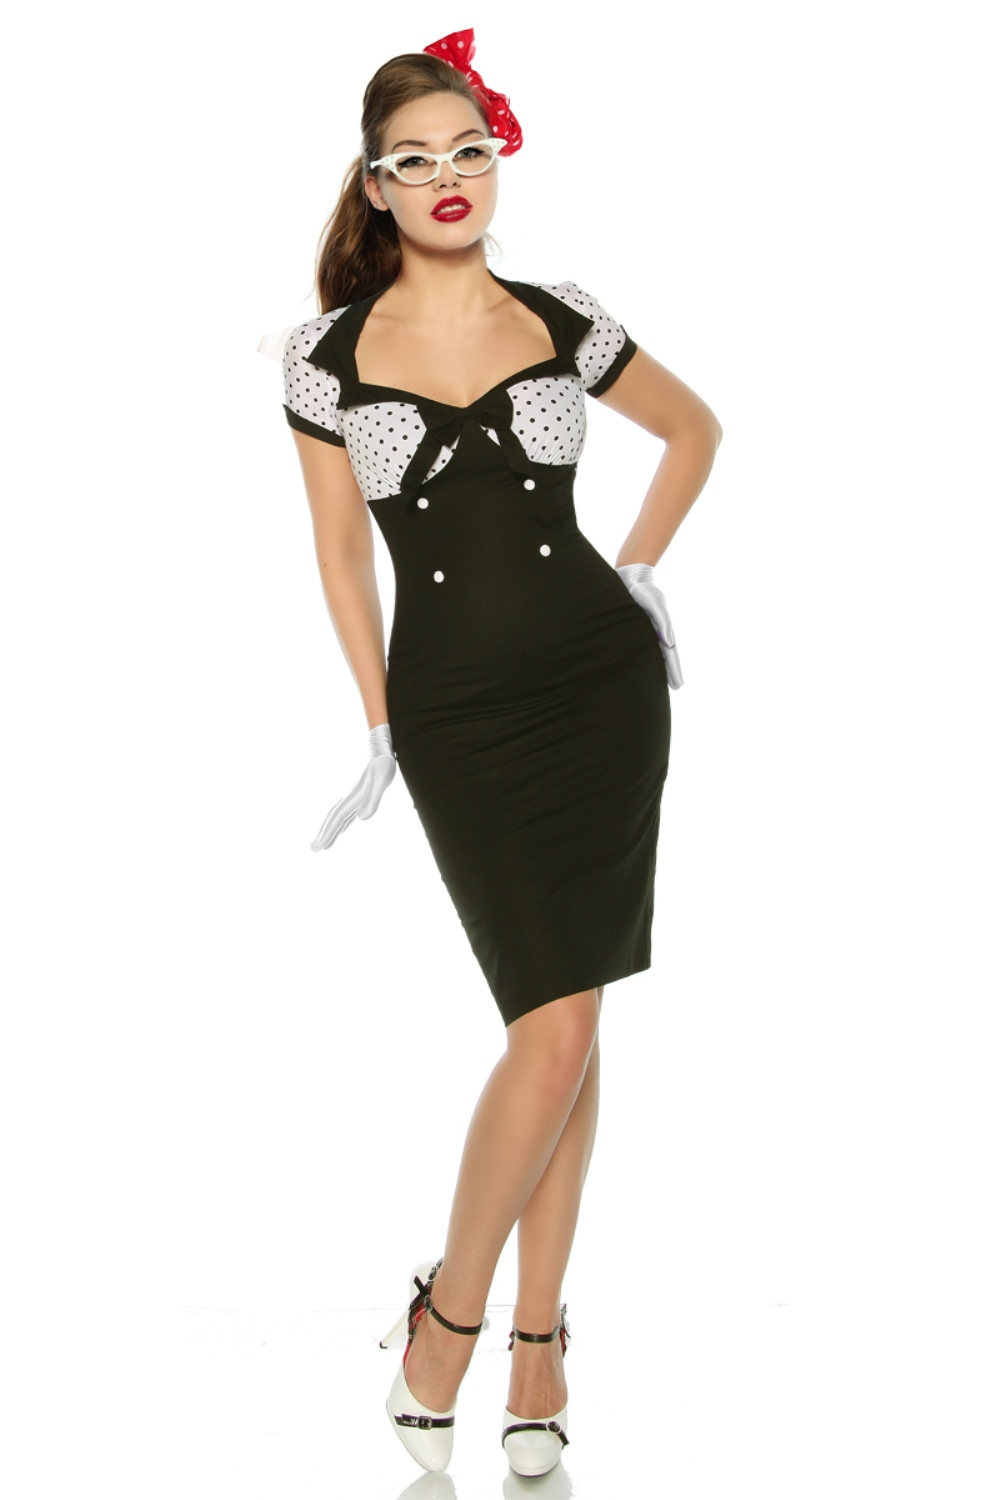 Pin-Up Vintage-Kleid von Chic Chic Chic Star 4f9815